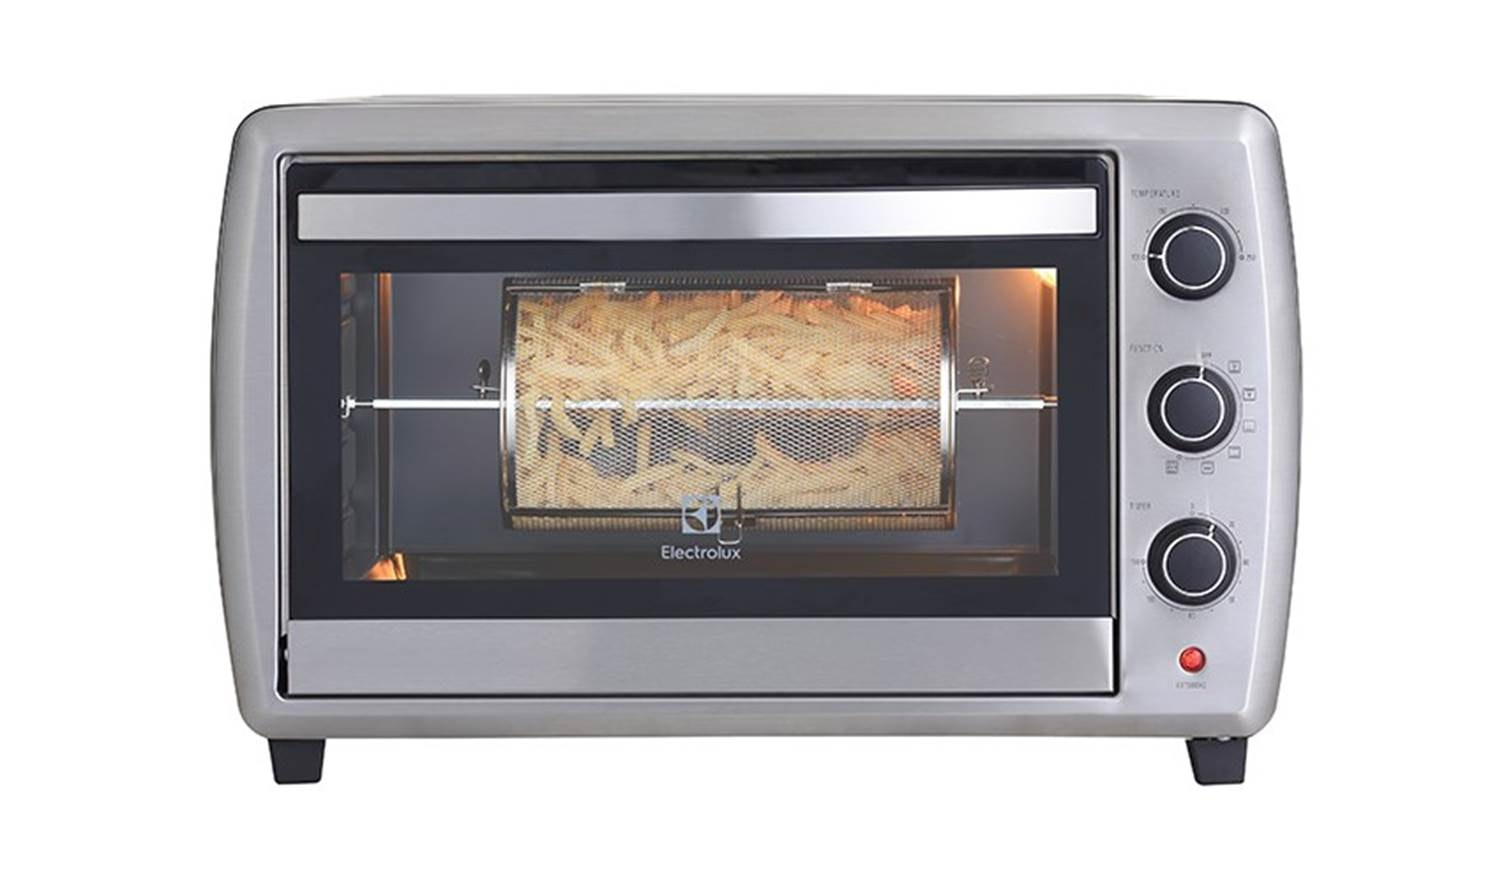 electrolux 90cm oven. Electrolux EOT-56MXC Electric Oven 90cm